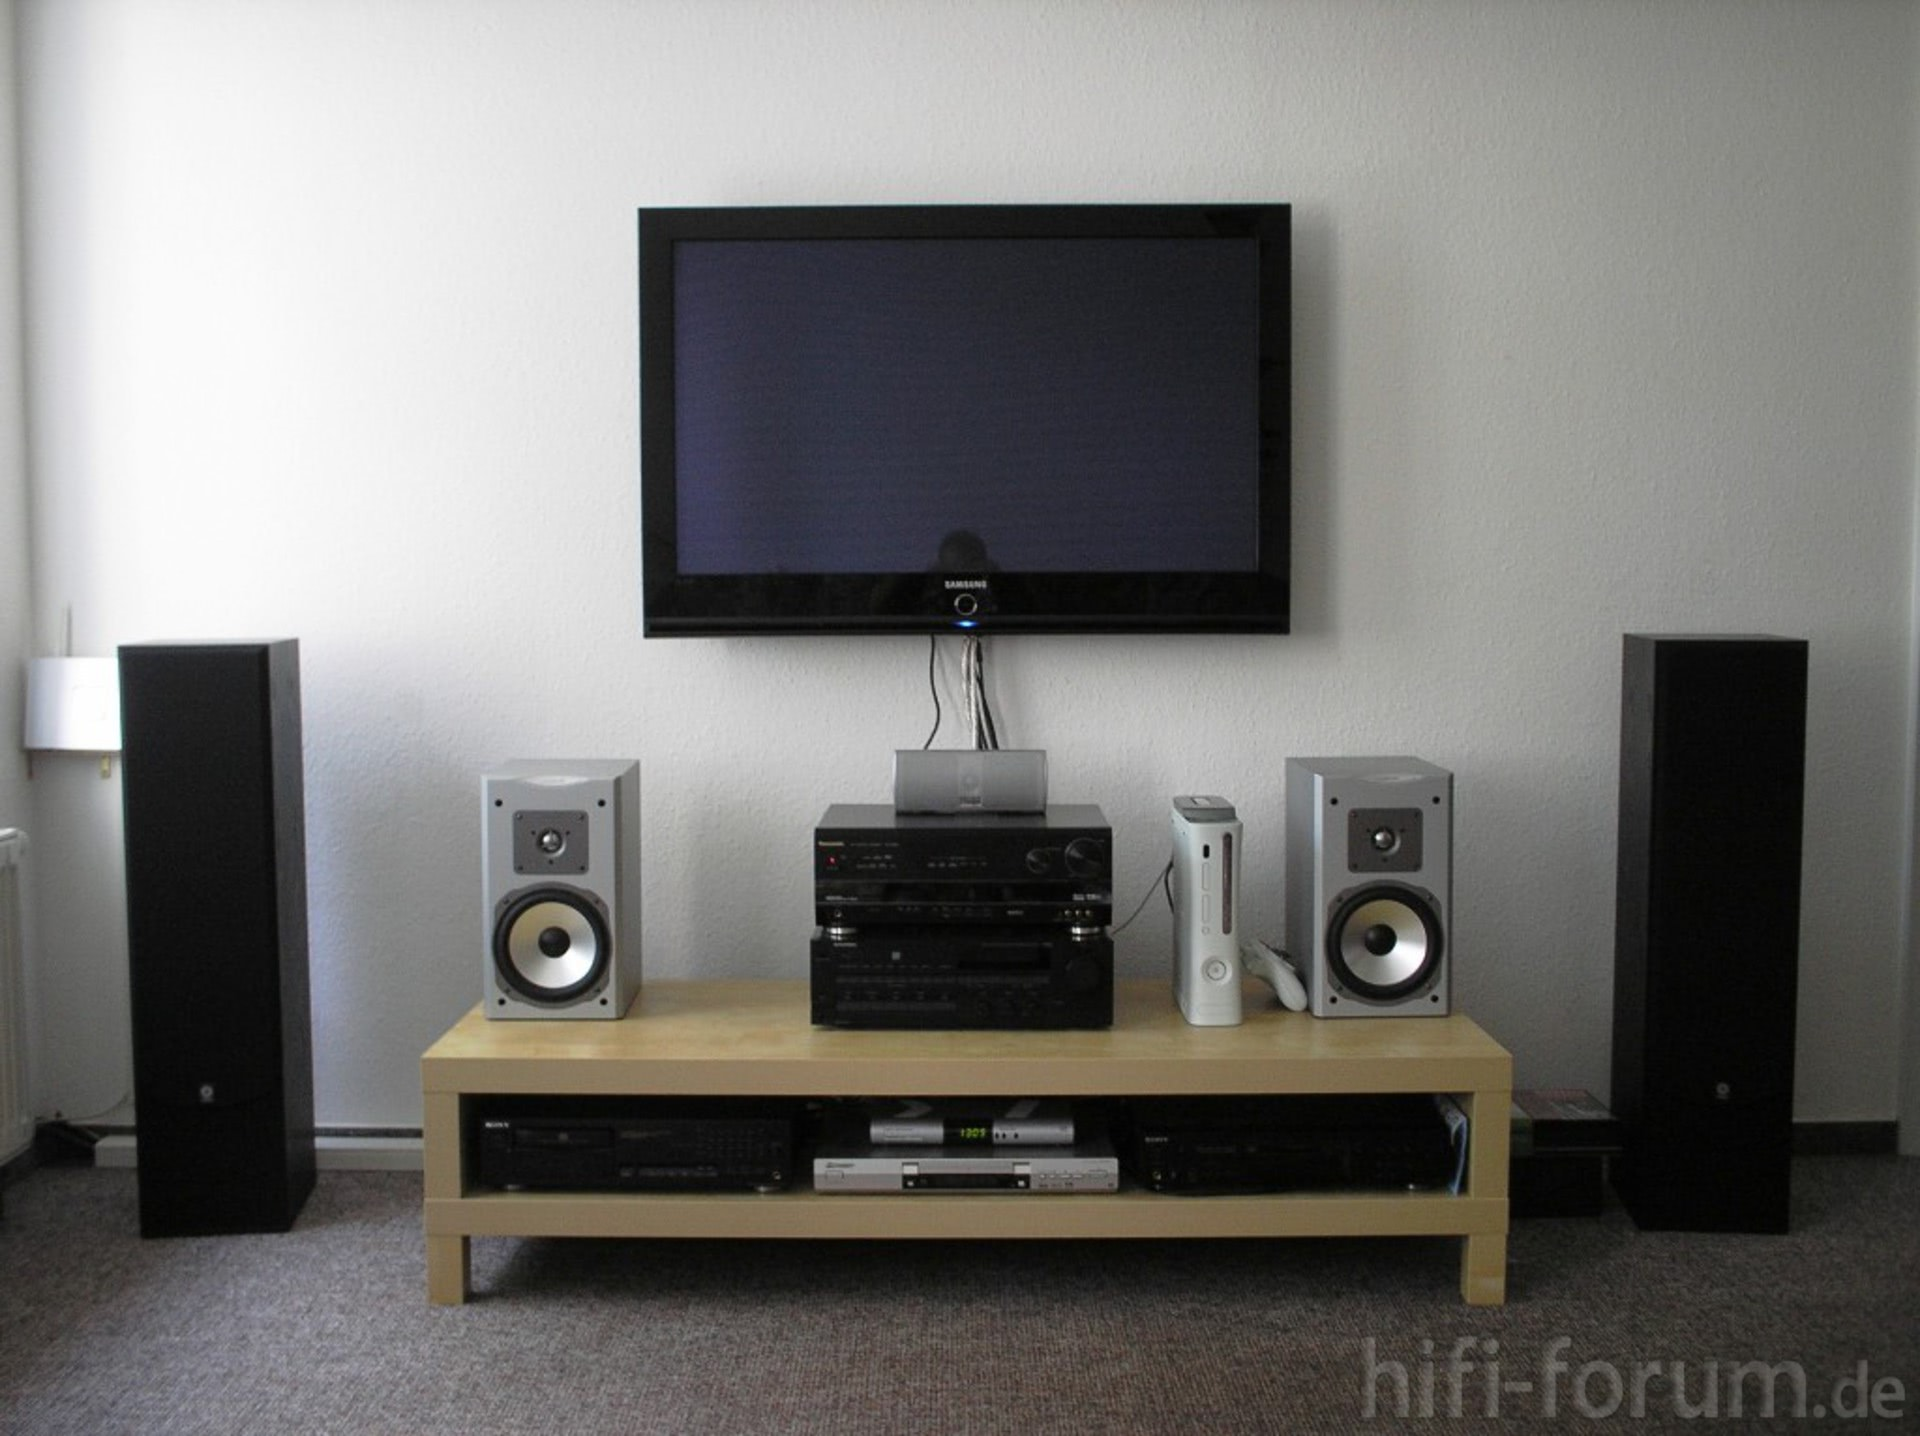 homecinema heimkino homecinema surround hifi bildergalerie. Black Bedroom Furniture Sets. Home Design Ideas